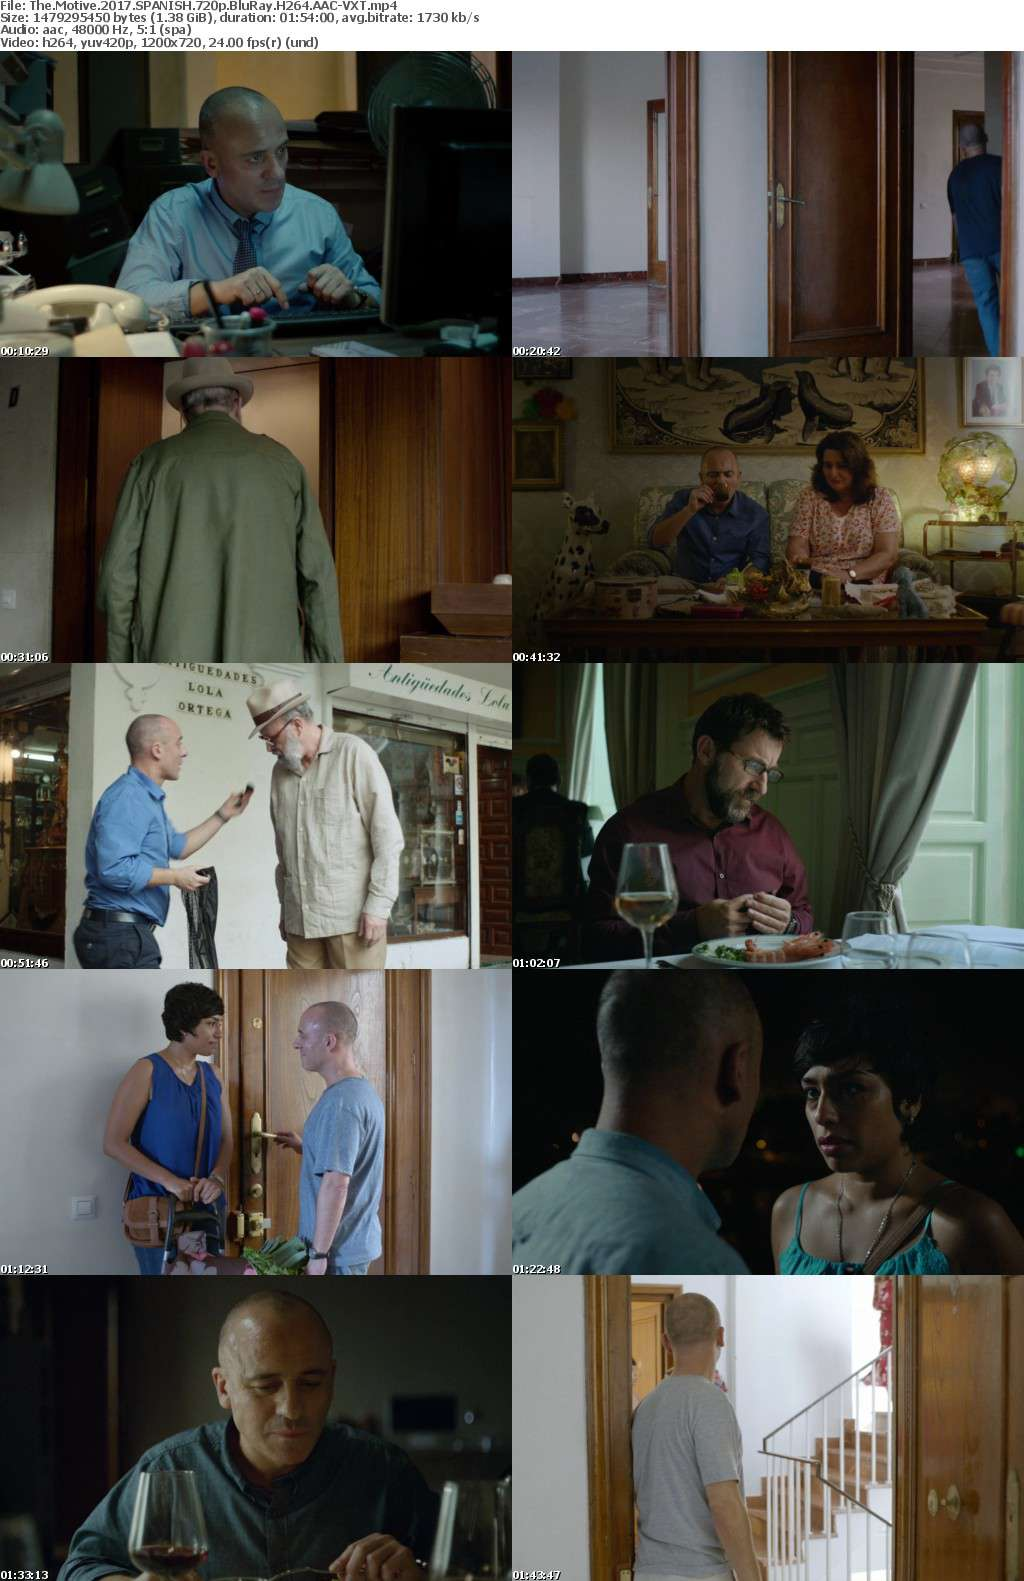 The Motive 2017 SPANISH 720p BluRay H264 AAC-VXT